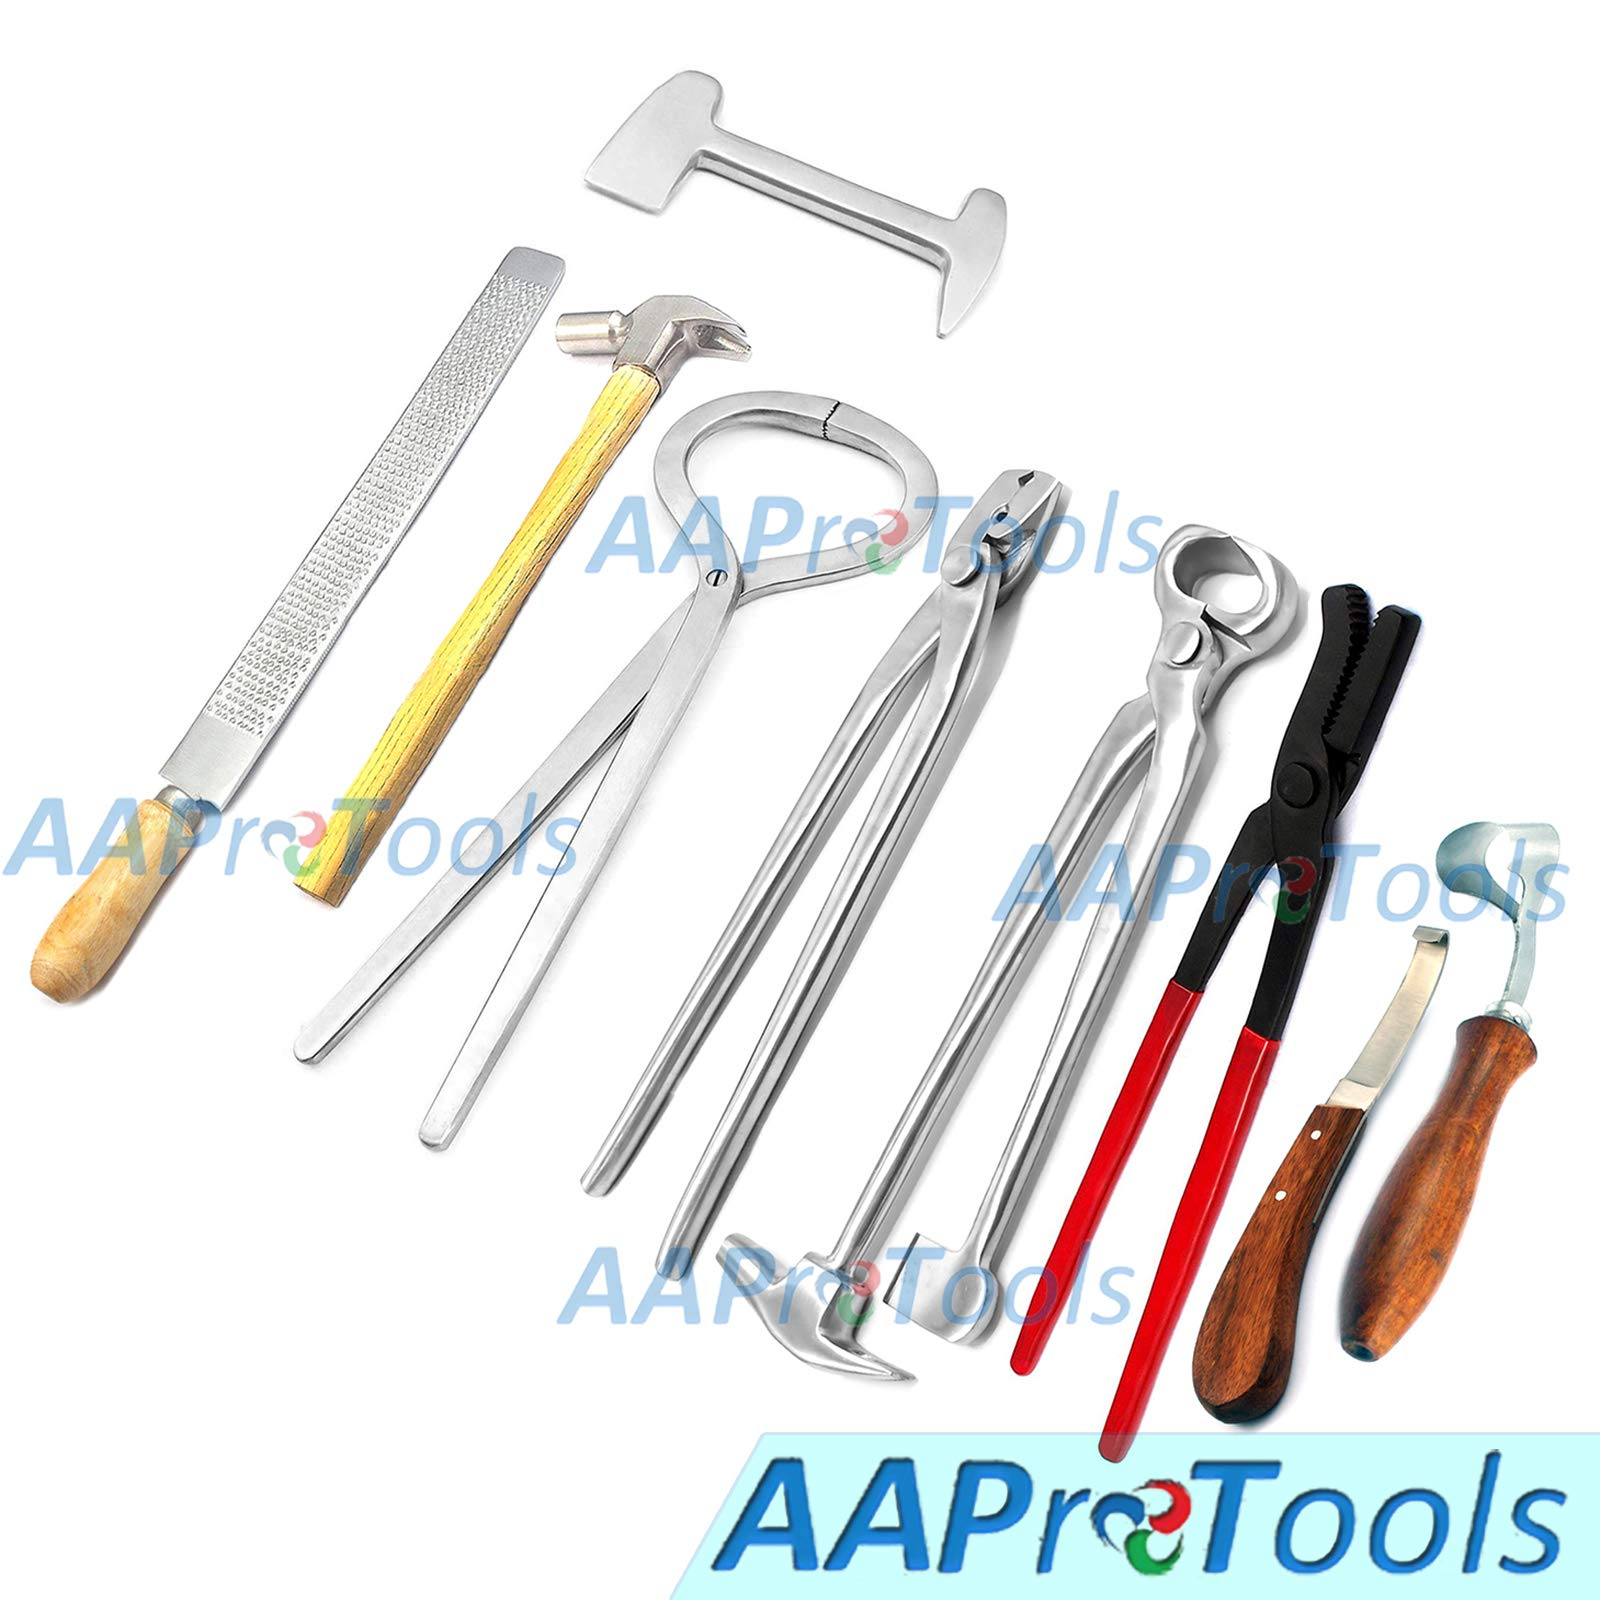 AAProTools Horse Farrier Tool Kit Grooming 9 Pieces Complete Tools Kit by AAProTools